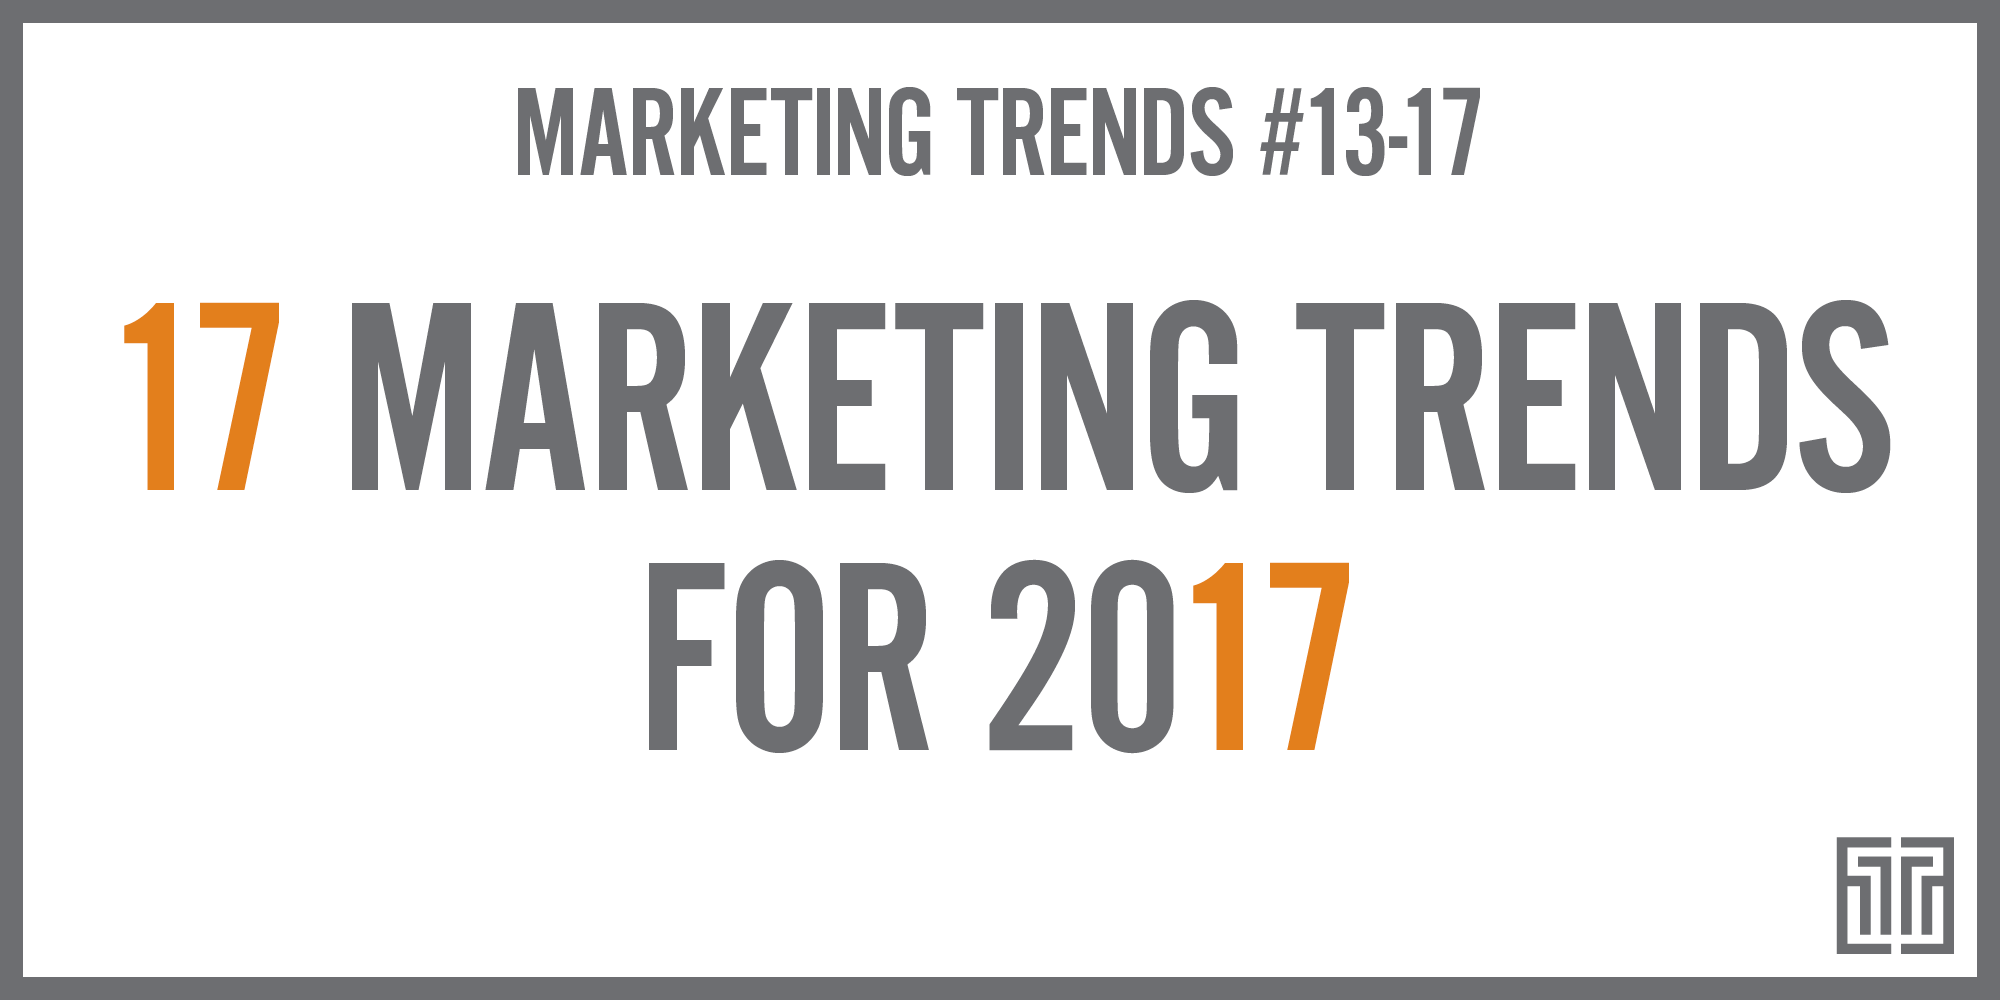 The Top 17 Marketing Trends for 2017: Trends 13-17